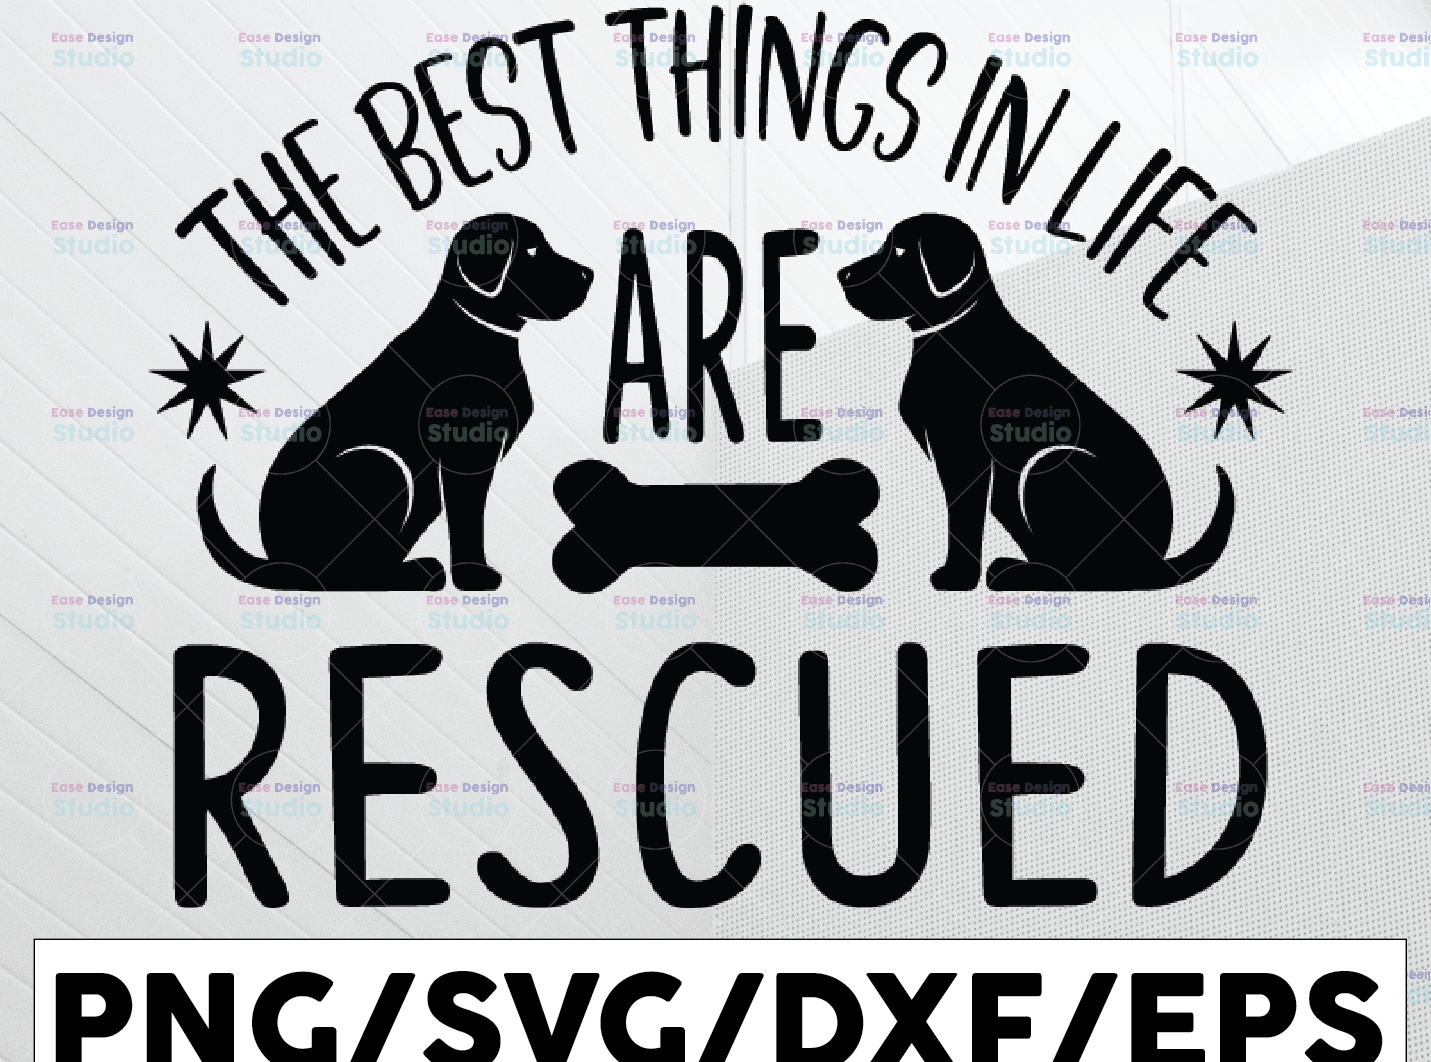 The Best Things In Life Are Rescued svg dxf eps png Files for Cutting Machines Cameo Cricut, - WTMETSY13012021 01 200 -